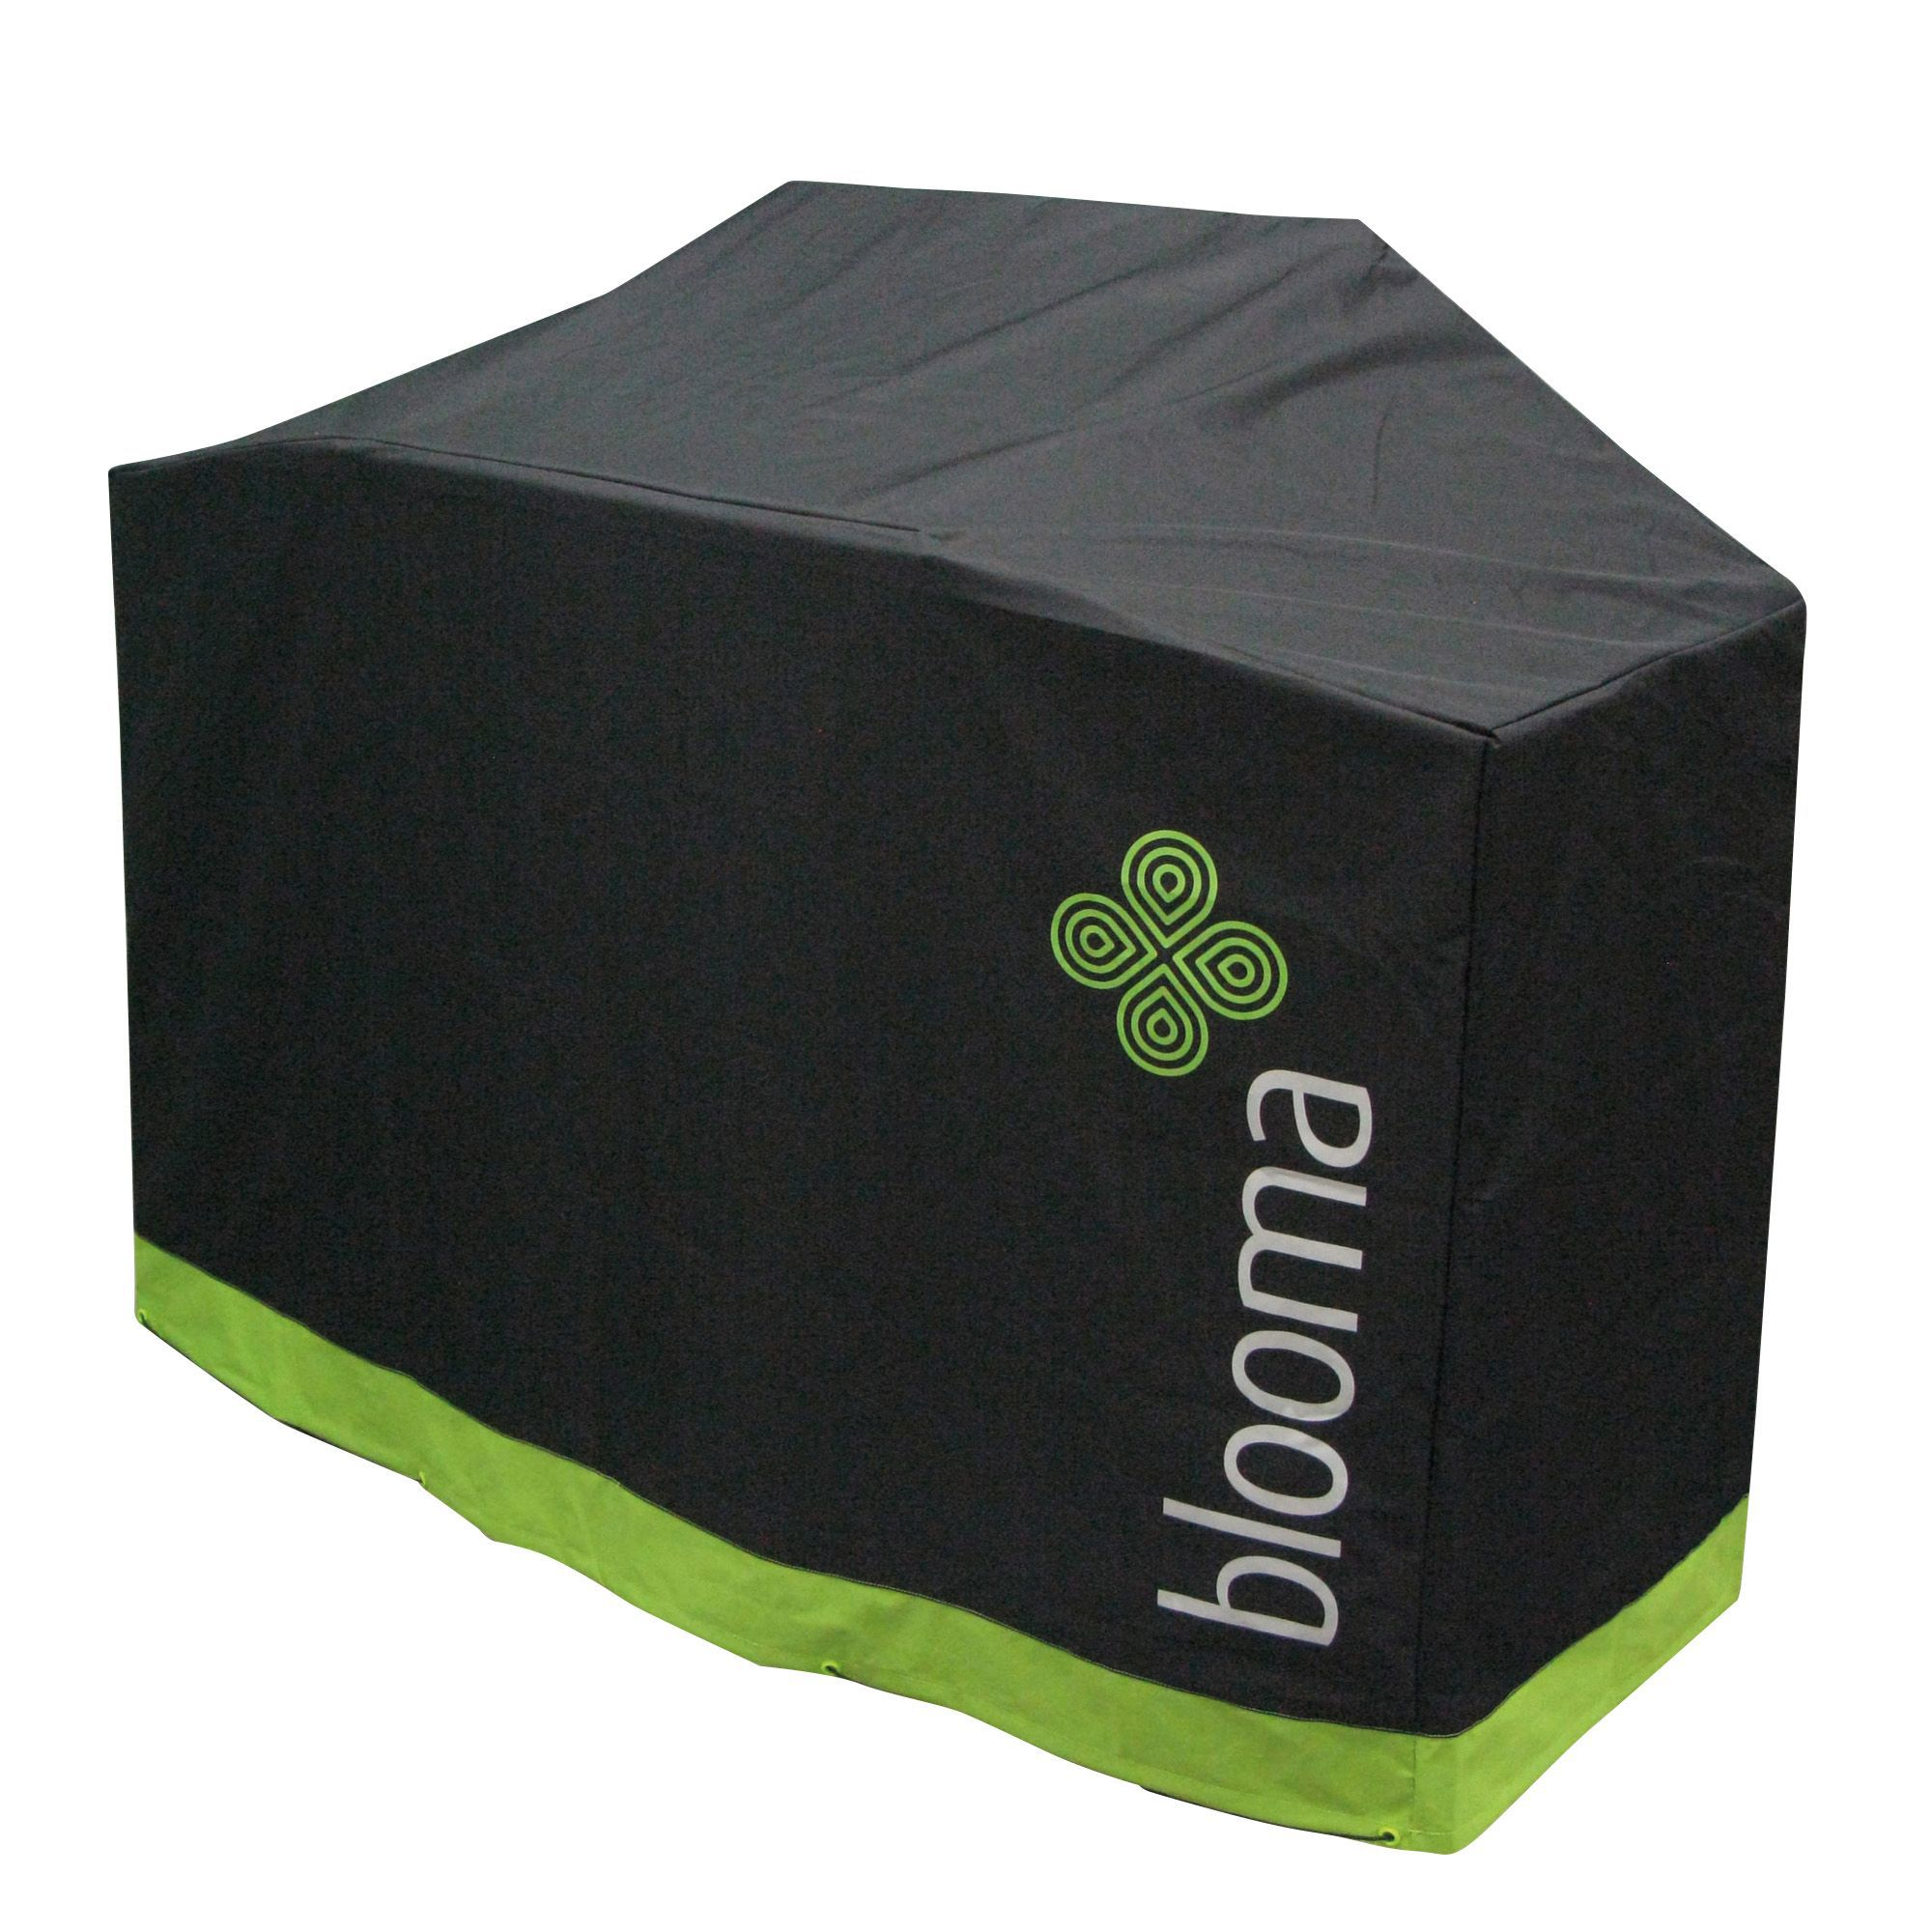 Blooma Byron 3 Burner Barbecue Cover Departments